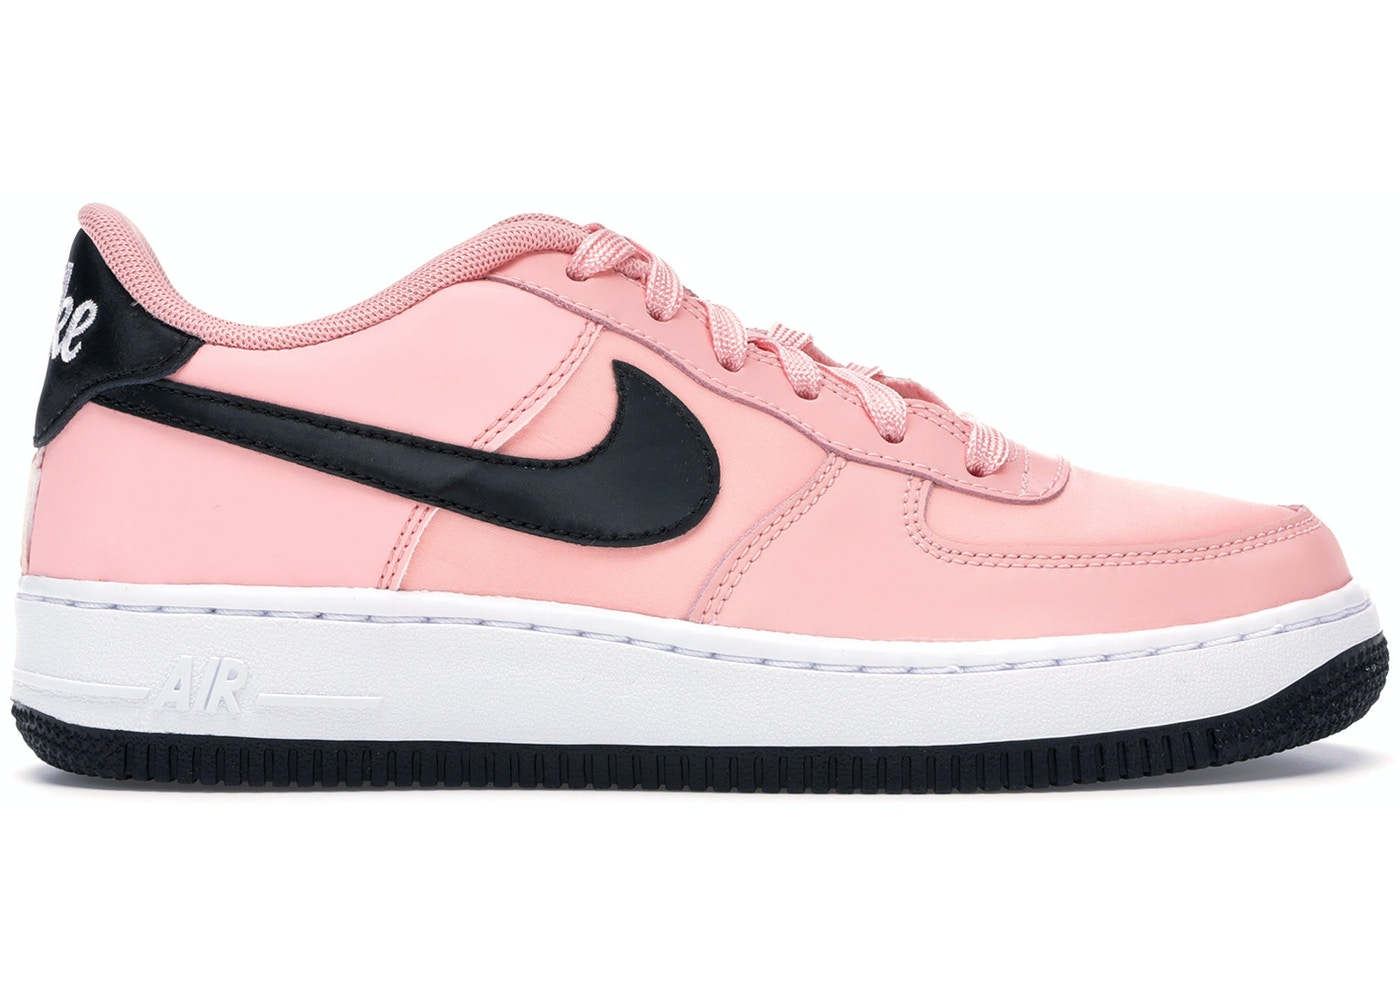 quality design 35b14 47824 Air Force 1 Low Valentines Day 2019 Bleached Coral (GS) - BQ6980-600